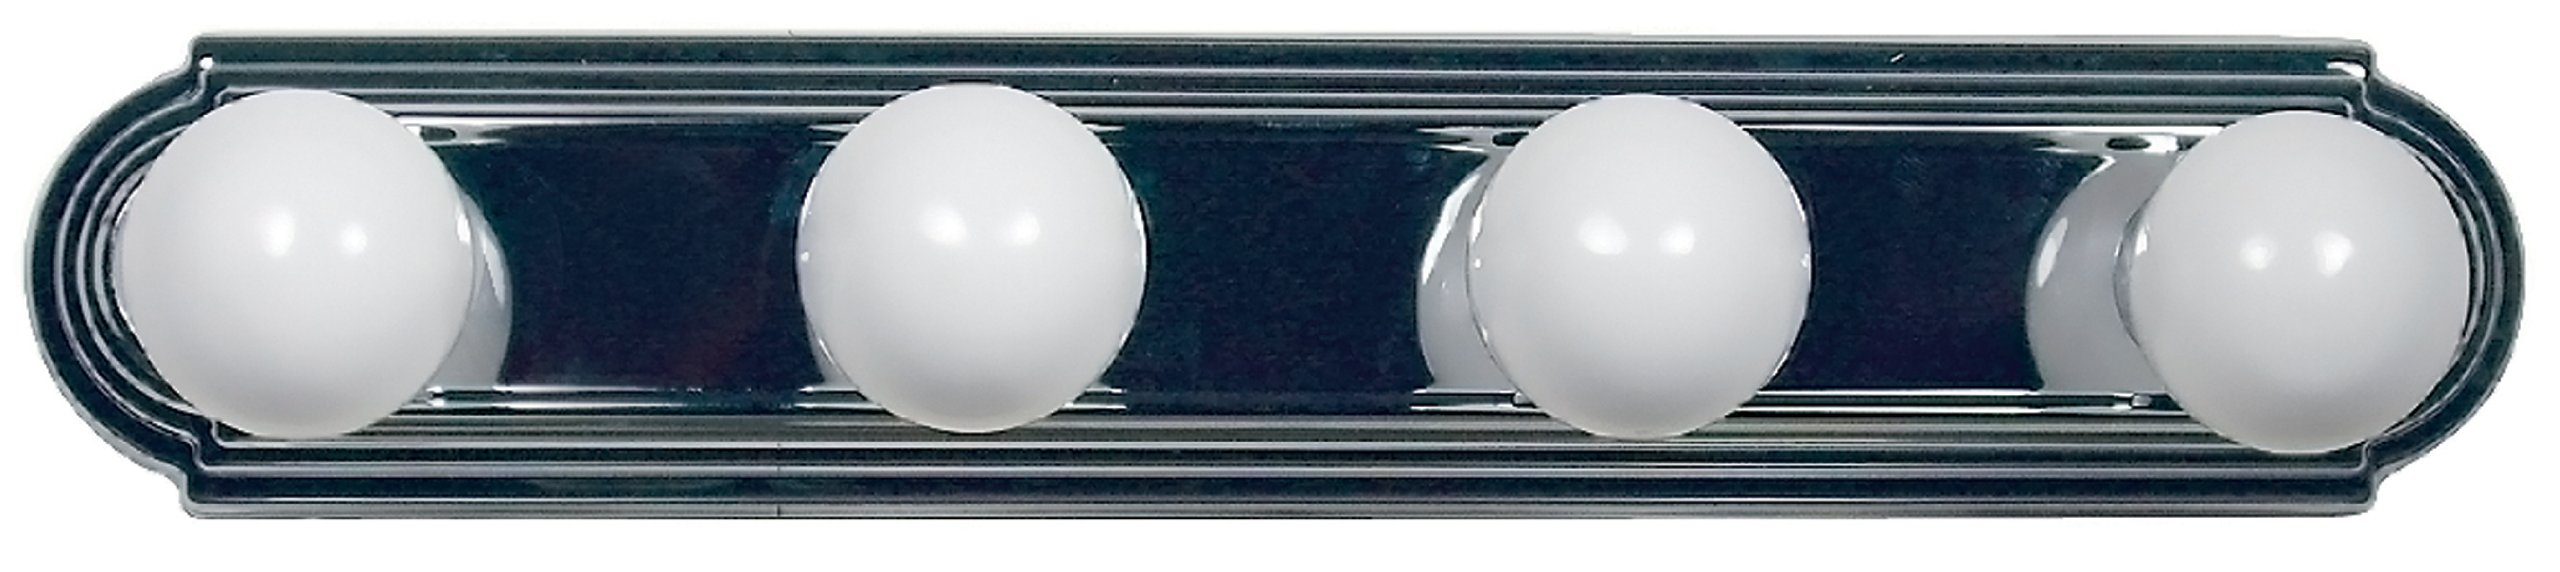 Yosemite Home Decor 4504SN Vanity Series Four-Light Incandescent, 24-Inch, Satin Nickel, 15 Piece - Width 24-Inch by height 5-Inch Requires (4) medium-based, 60-Watt incandescent bulbs (not included) Satin nickel frame with white glass - bathroom-lights, bathroom-fixtures-hardware, bathroom - 71QOHC7sGLL -